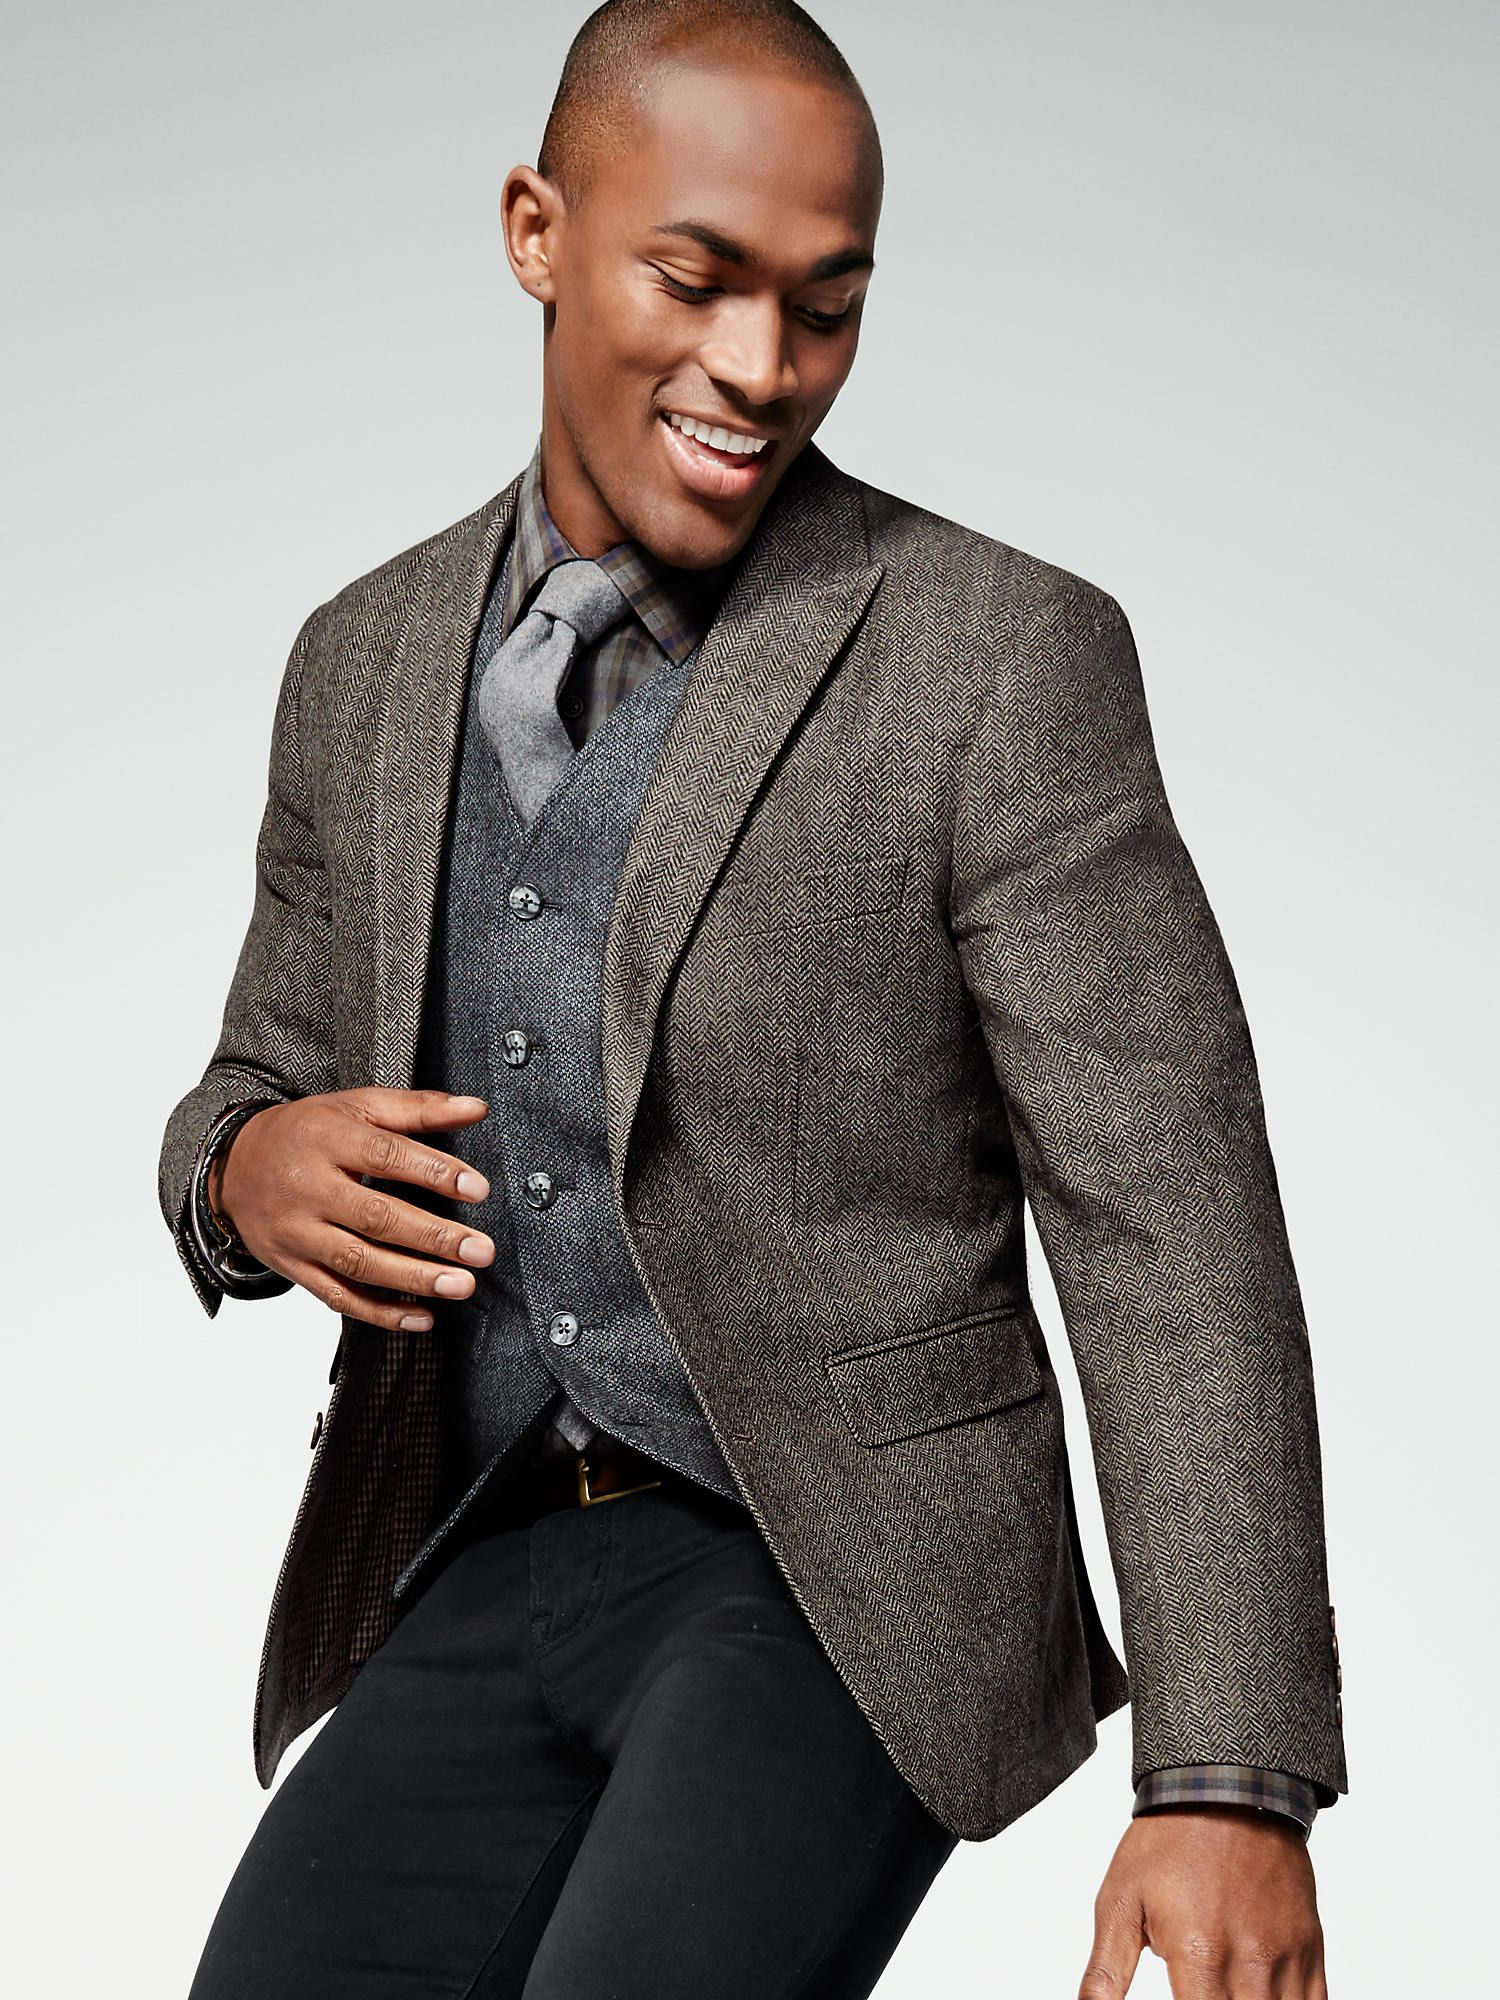 Make all the right moves in a textured sport coat layered over a ...